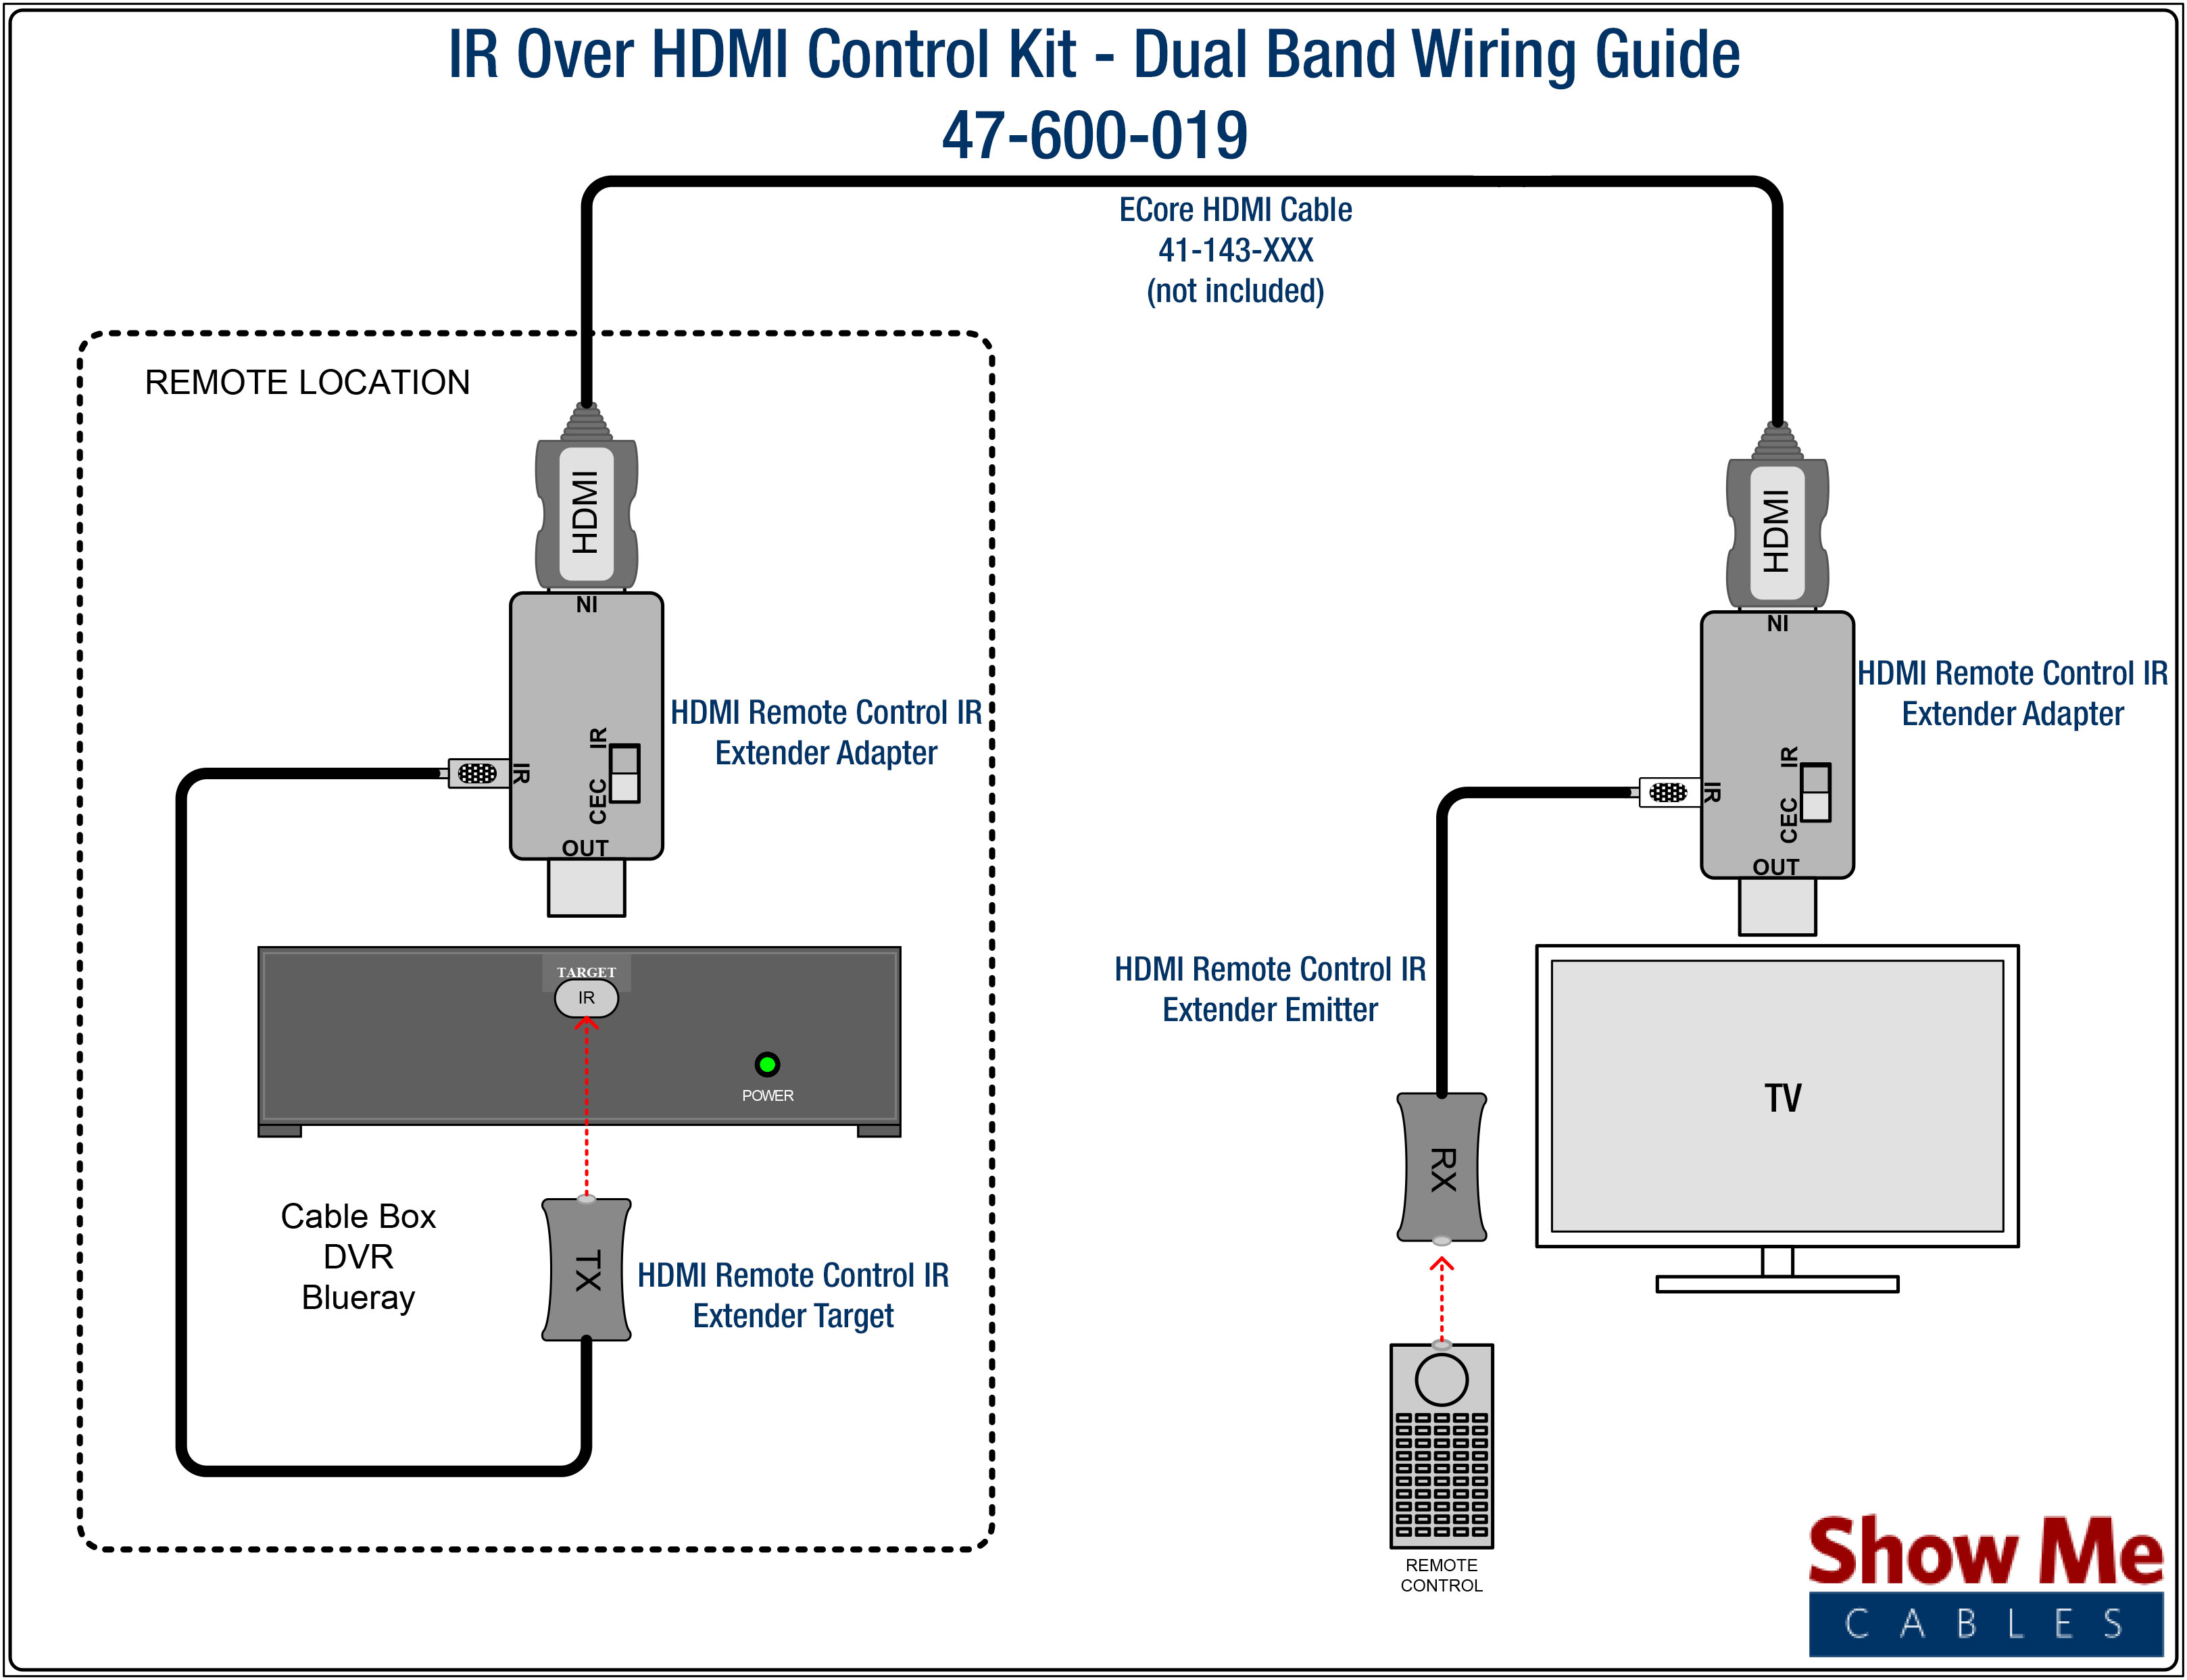 Infrared Remote Over Hdmi Control Kit Dual Band Cat5 Wiring Diagram Click Here To Download The User Manual